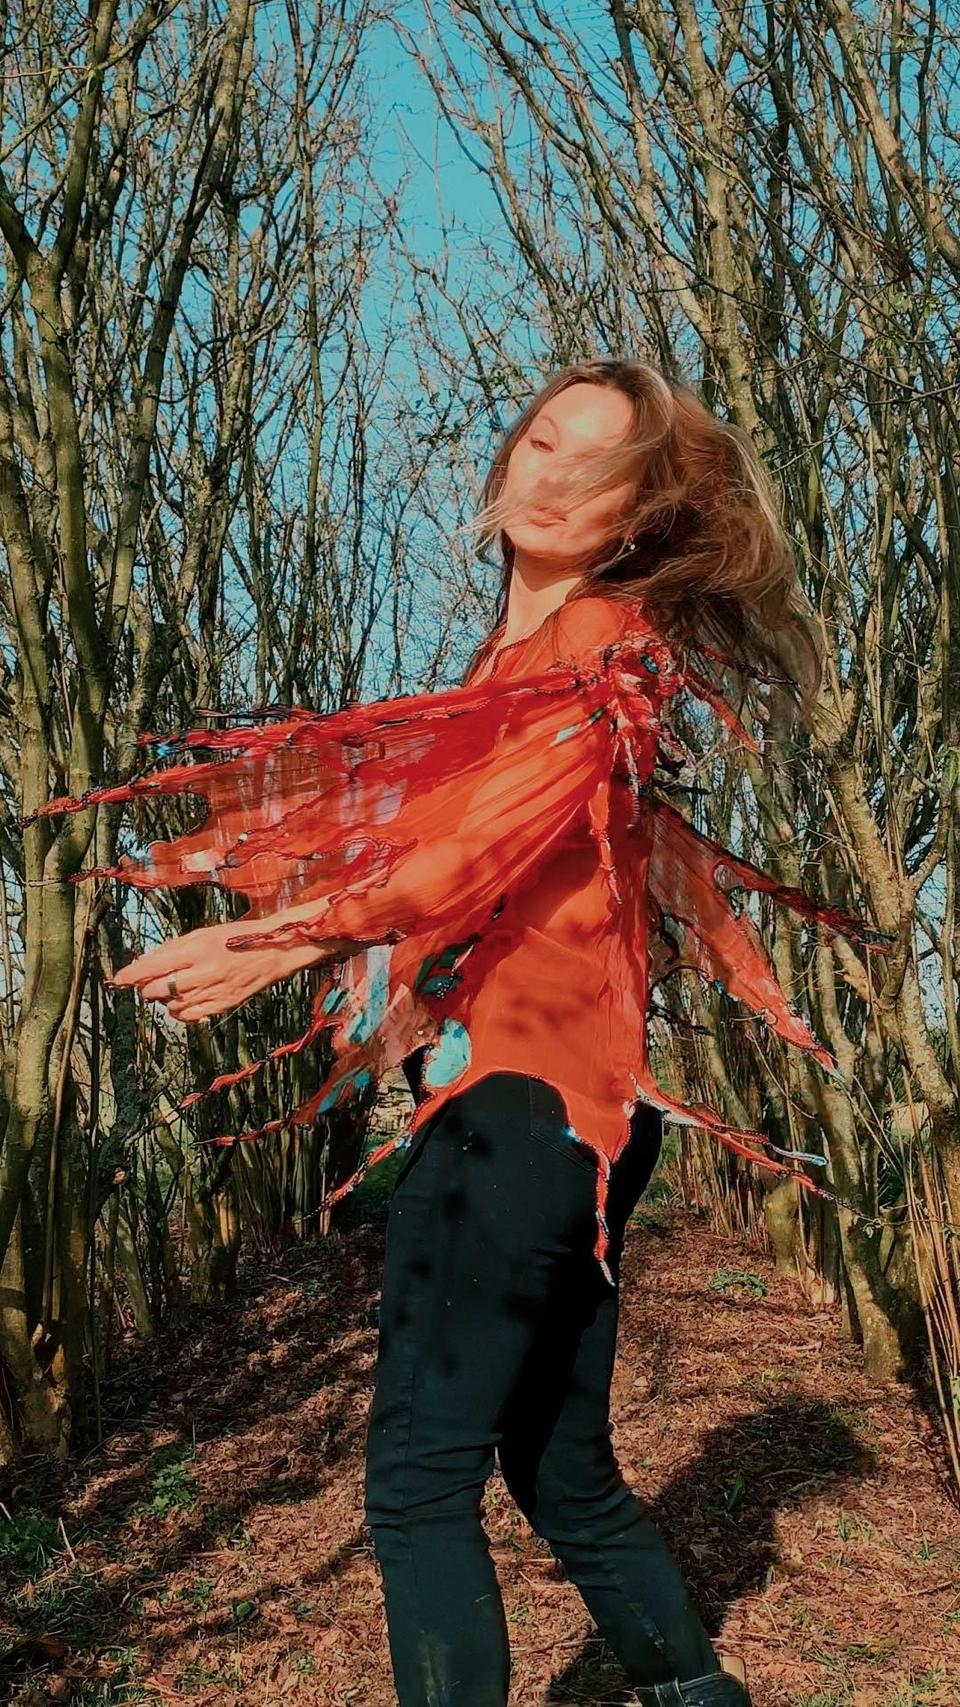 Kate Moss frolicking in a bohemian blouse in a tree lined path